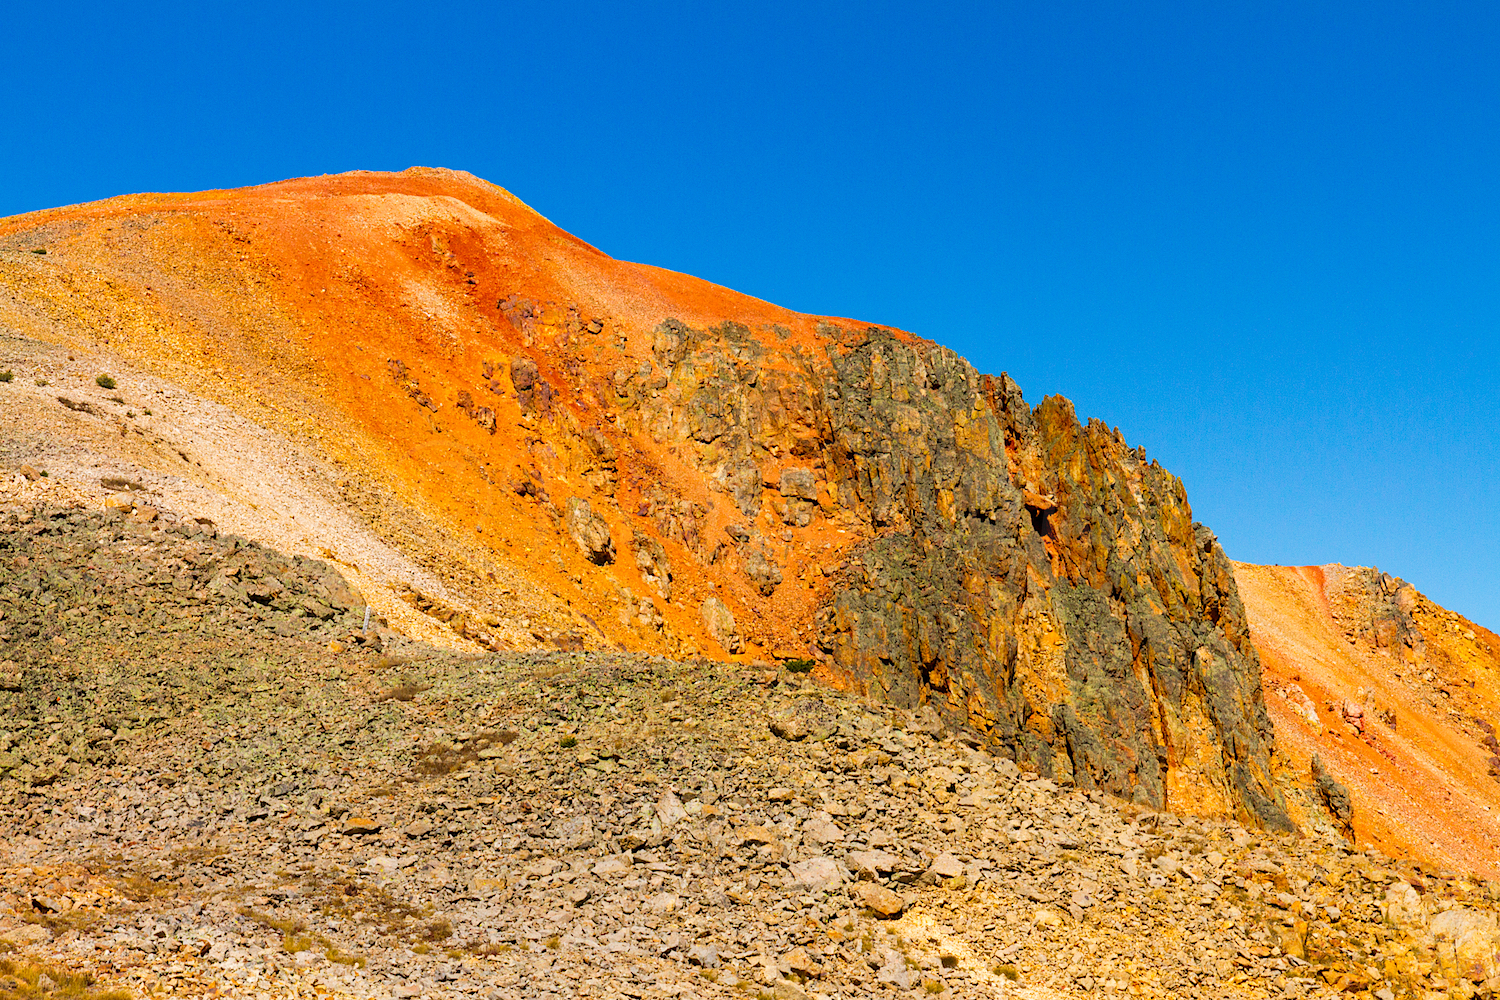 Red Mountain #3, Image # 6109